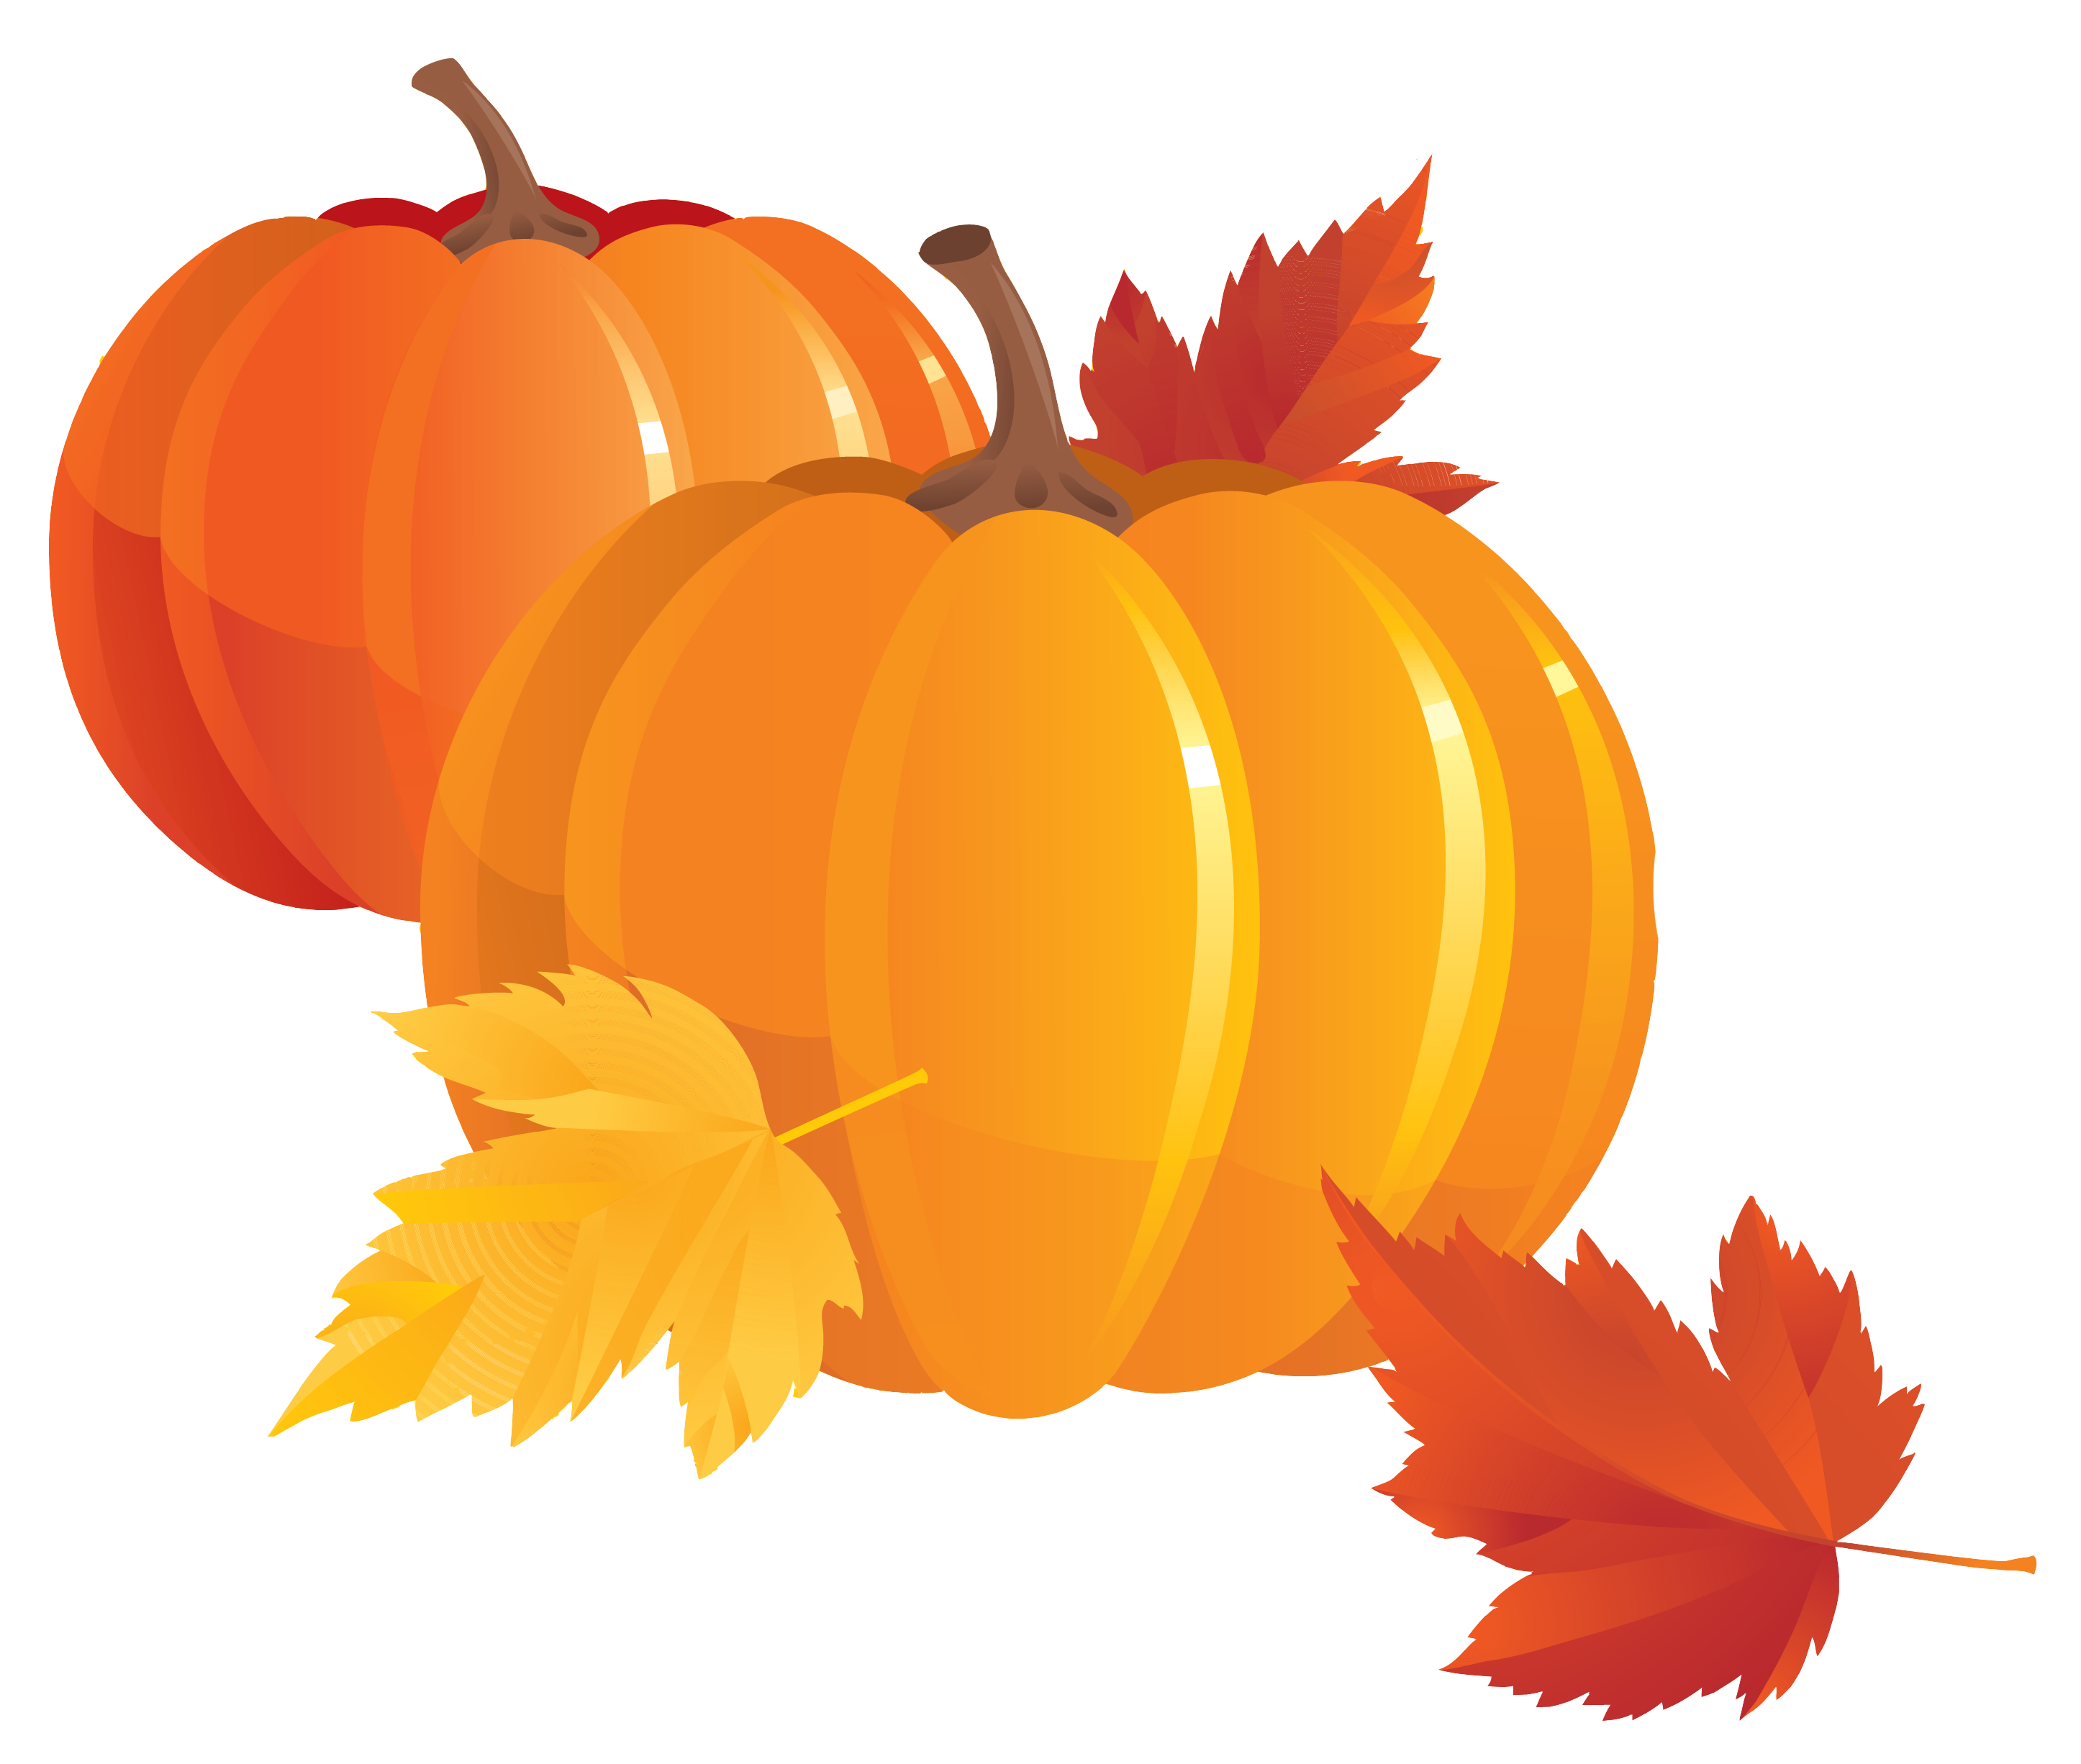 Clipart pumpkin png picture black and white stock Pumpkin PNG images free download picture black and white stock